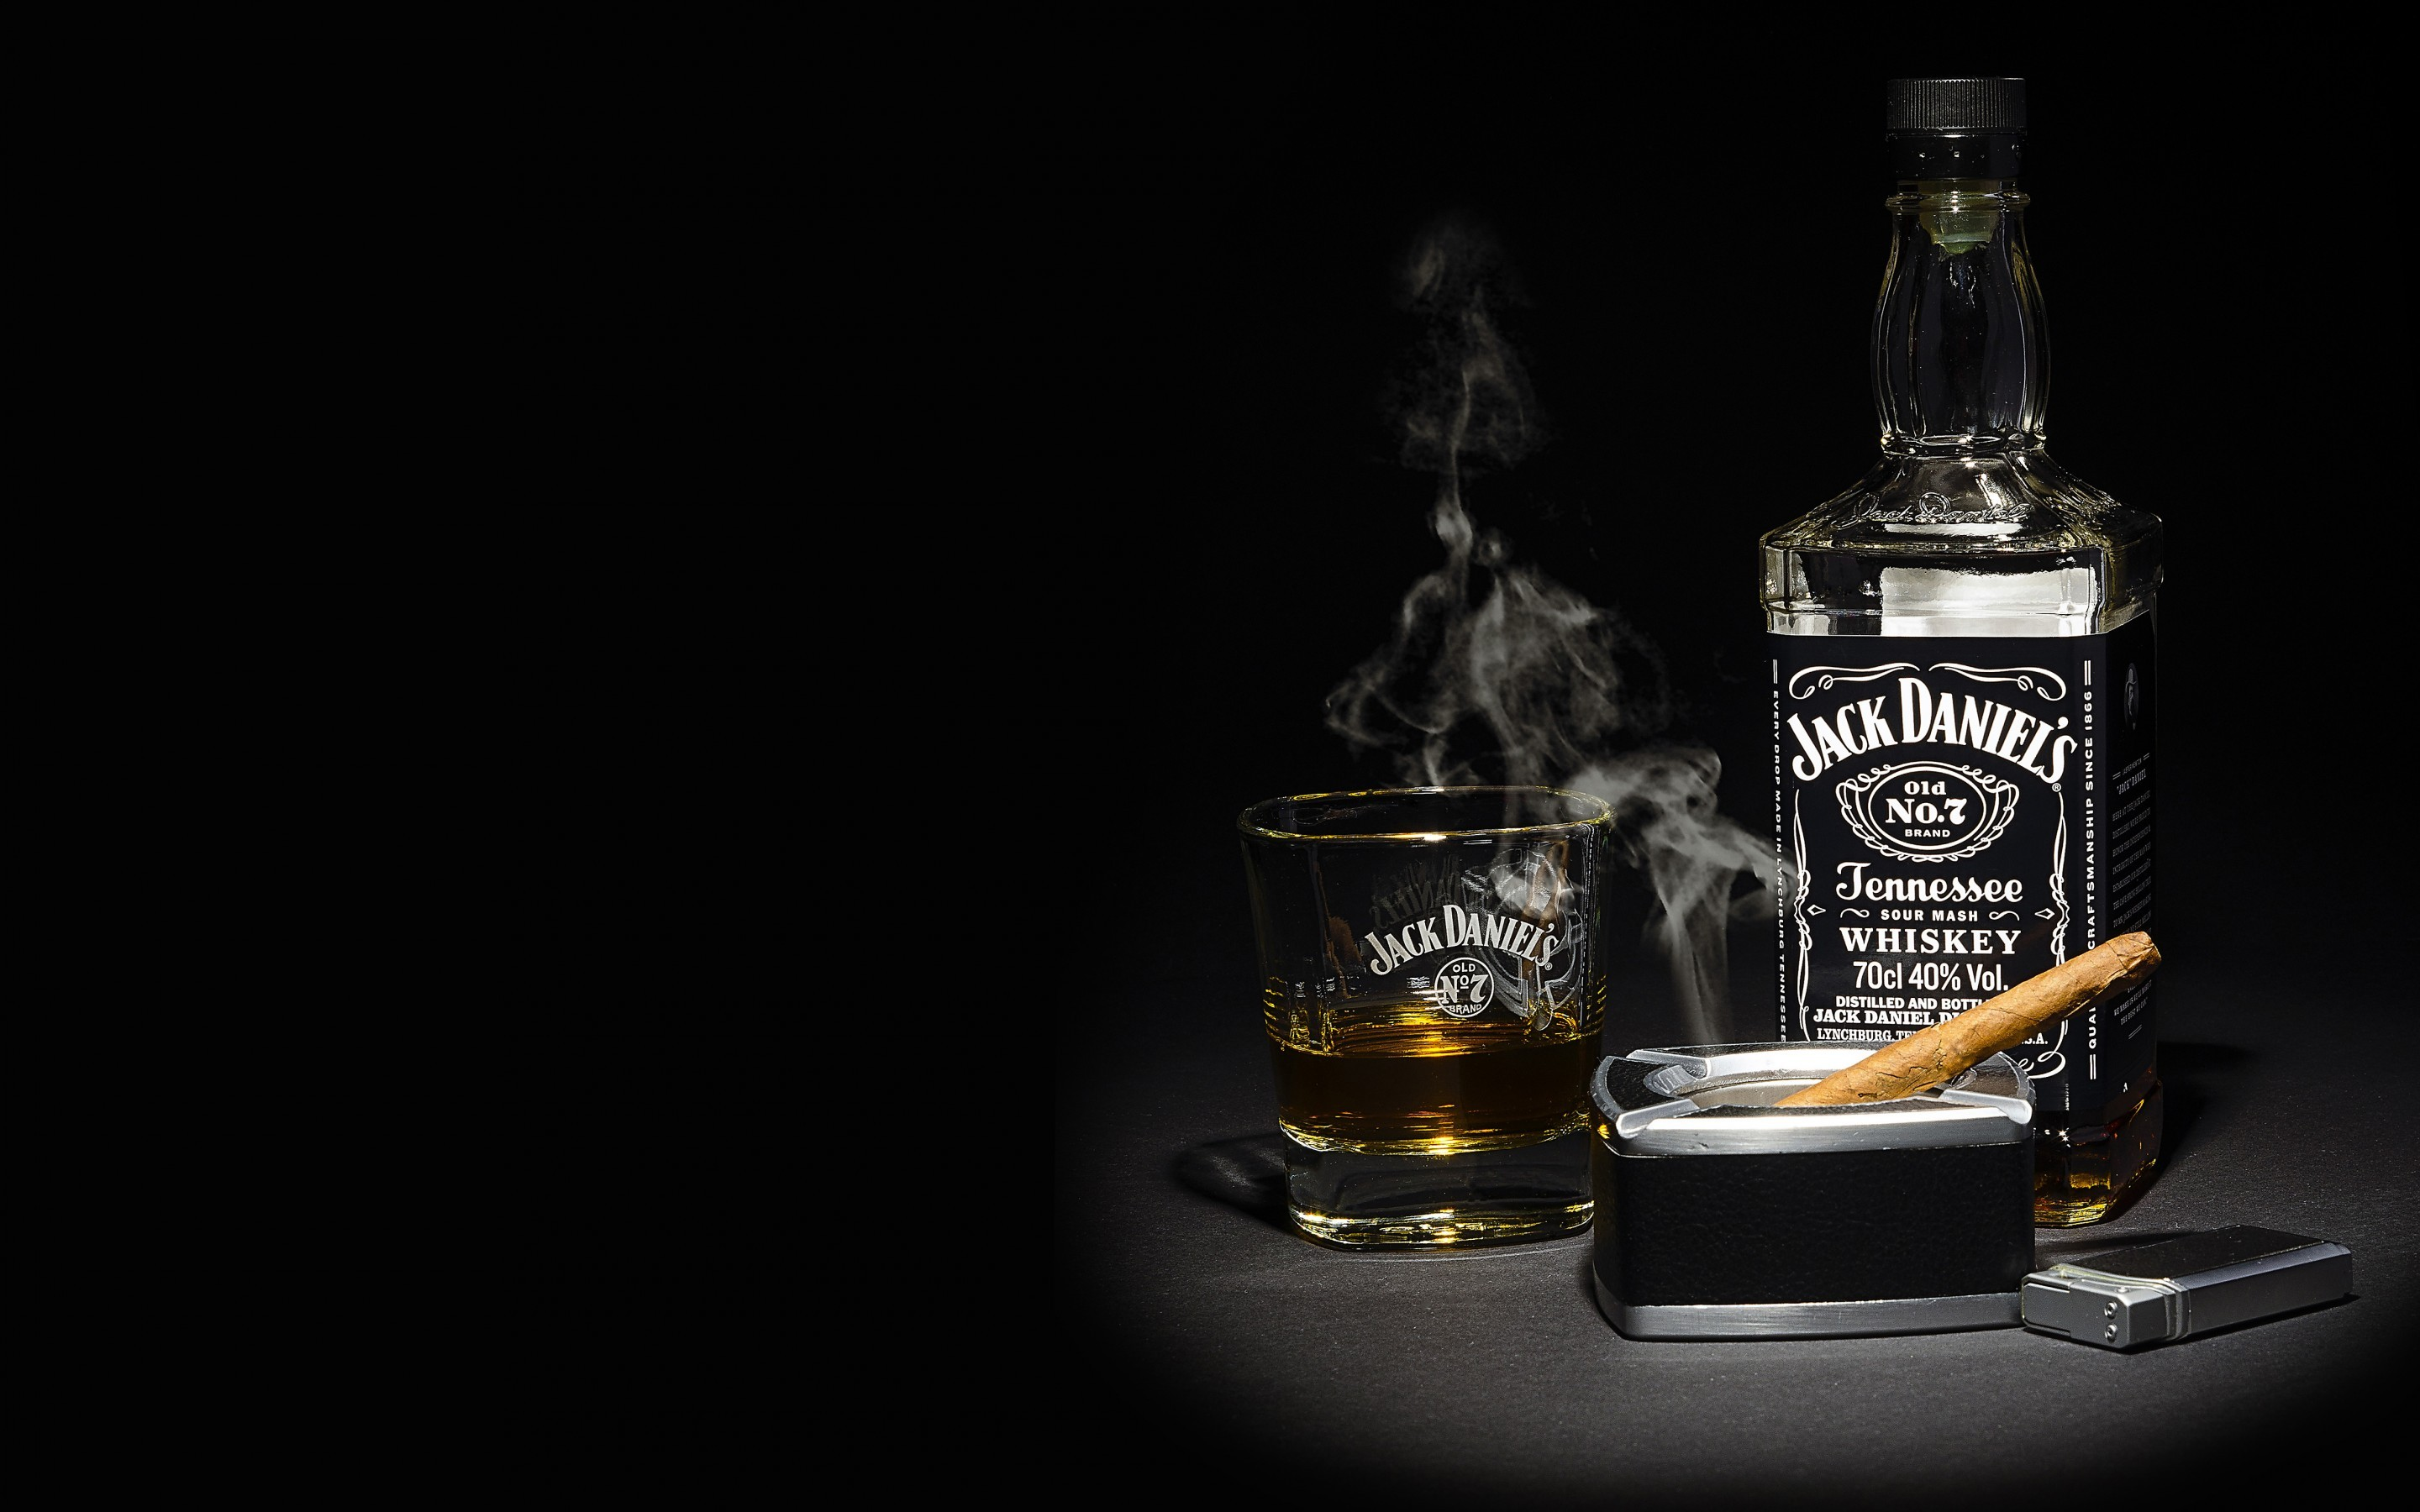 1366x768 jack daniels whiskey 1366x768 resolution hd 4k wallpapers jack daniels whiskey 1366x768 resolution voltagebd Gallery